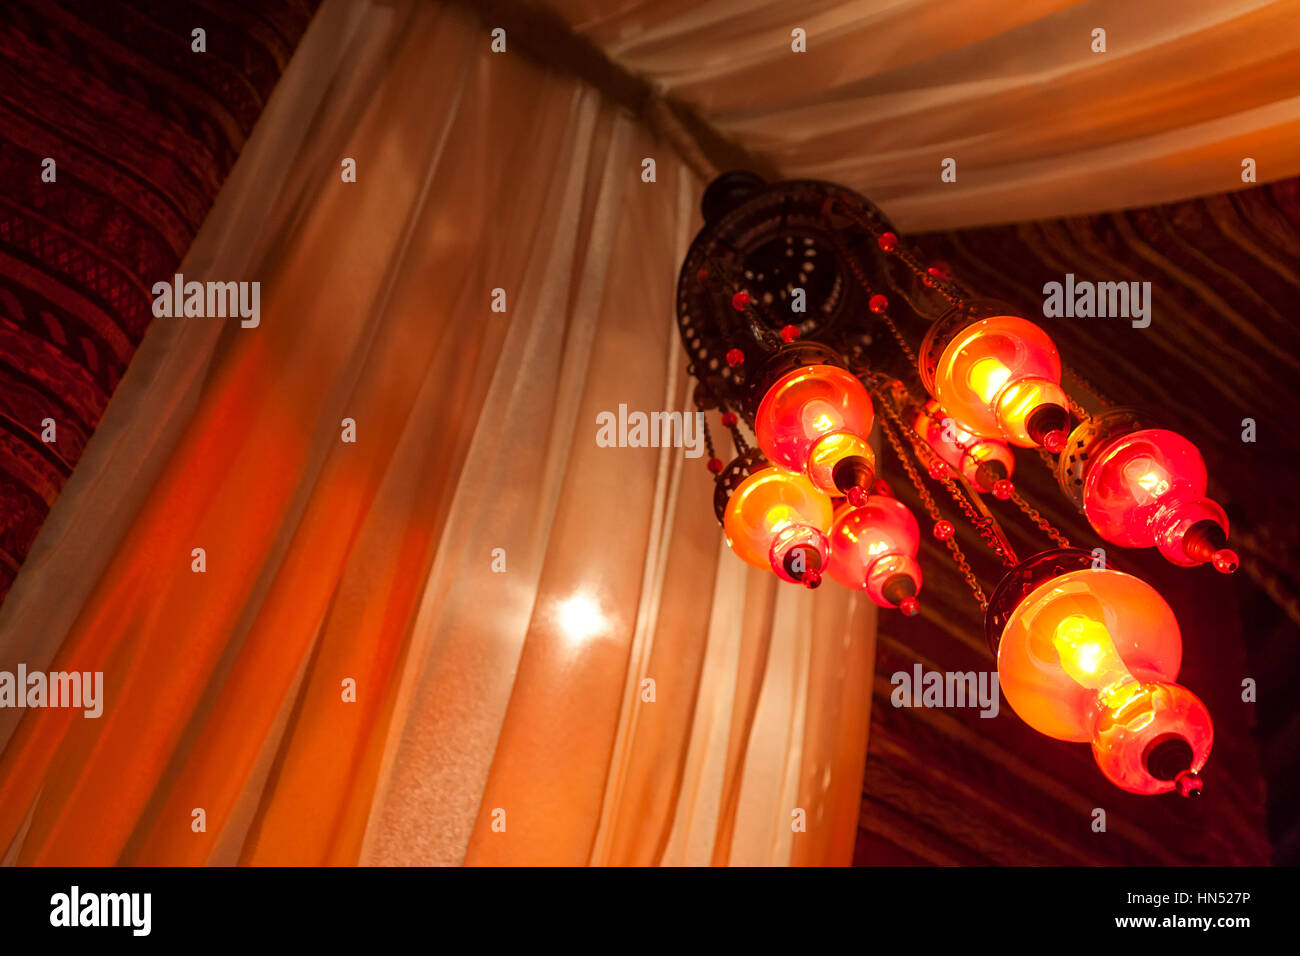 Arab Lamps Stock Photos  for Traditional Arabic Lamp  53kxo